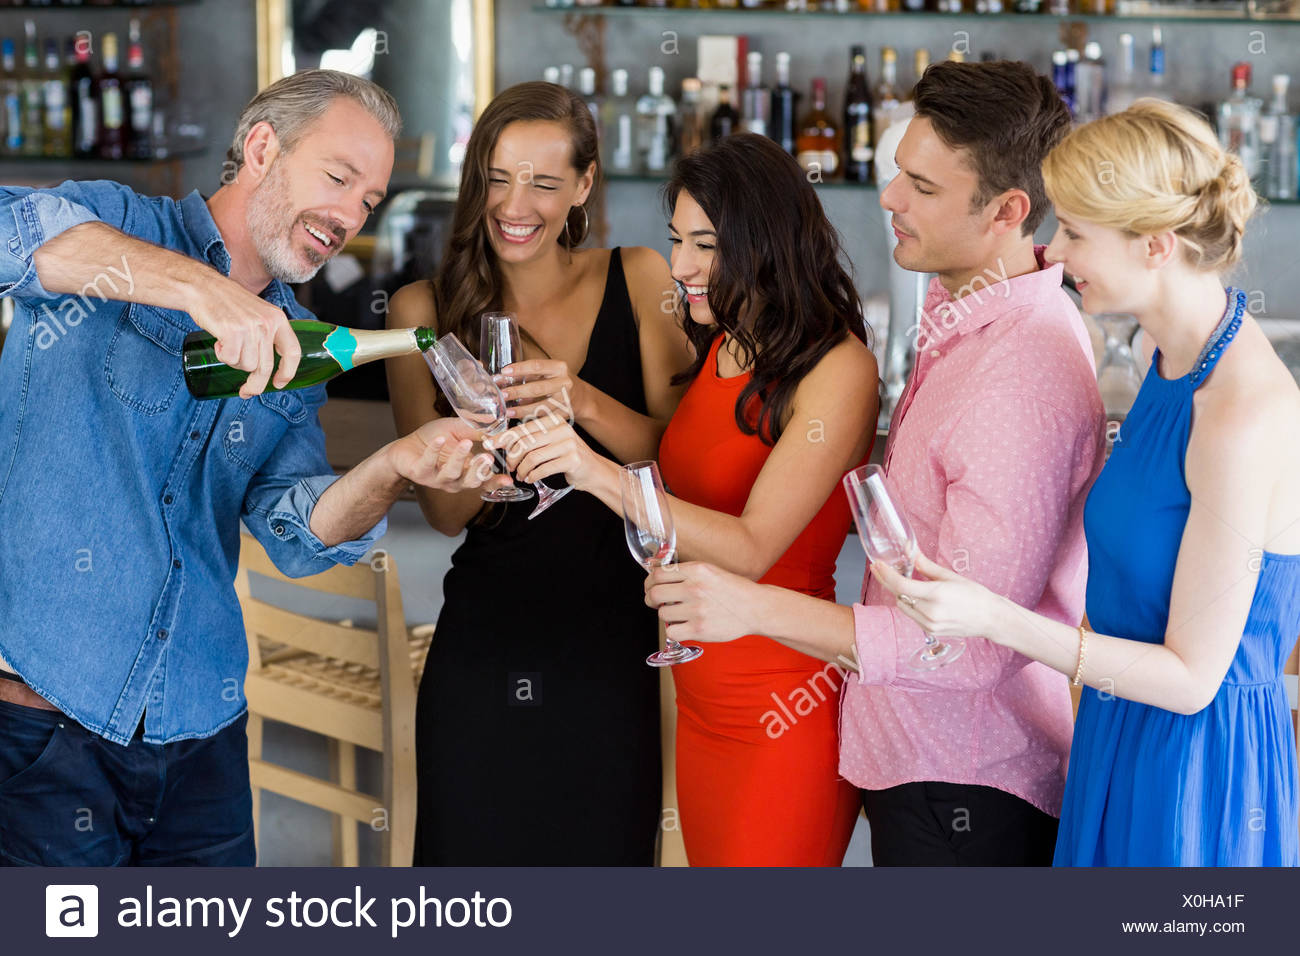 Man pouring champagne into glass - Stock Image